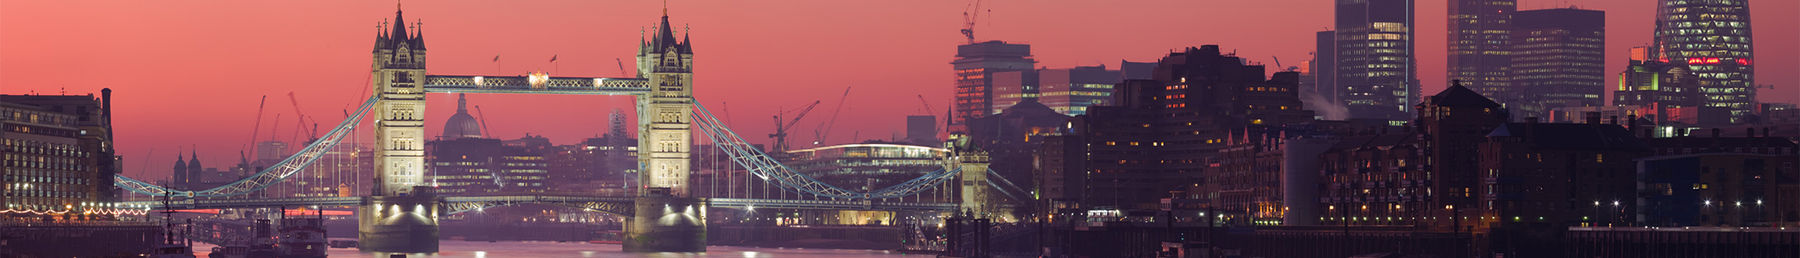 London's burningː Tower Bridge at sunset.